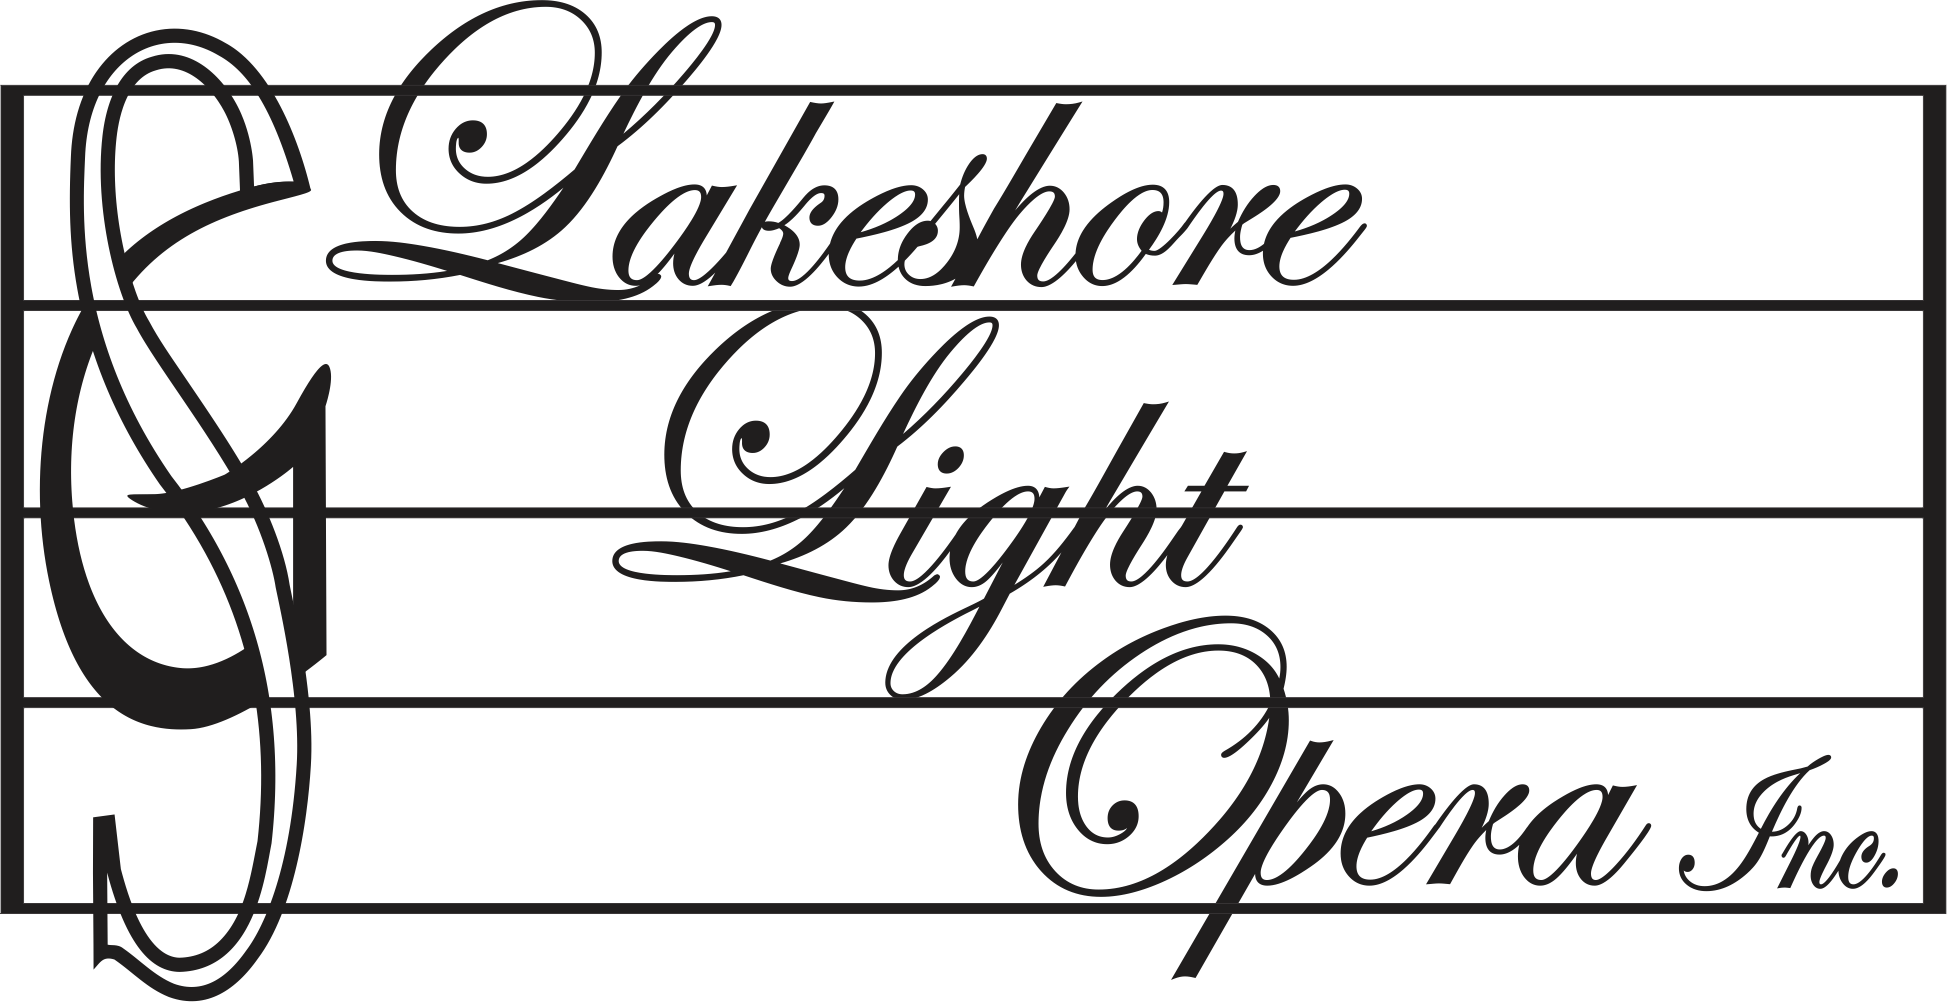 LAKESHORE LIGHT OPERA